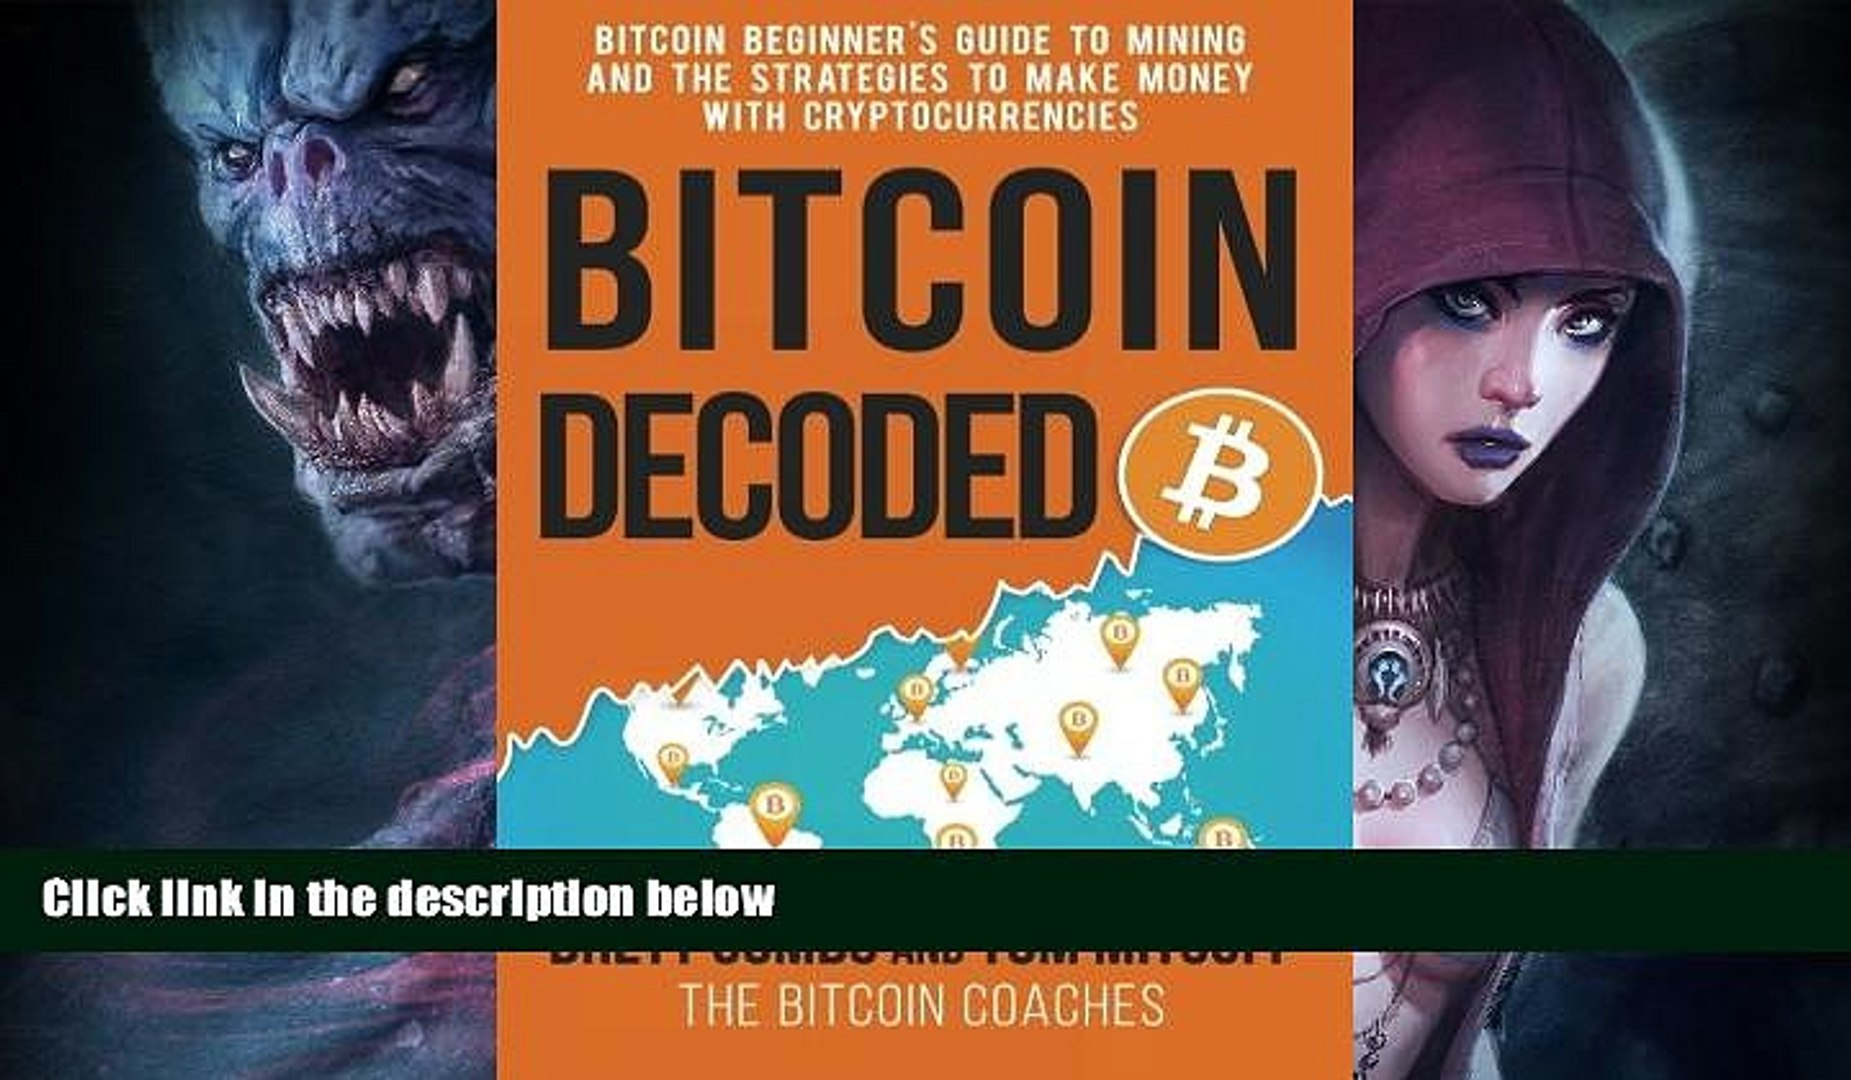 Audiobook  Bitcoin Decoded: Bitcoin Beginner s Guide to Mining and the Strategies to Make Money